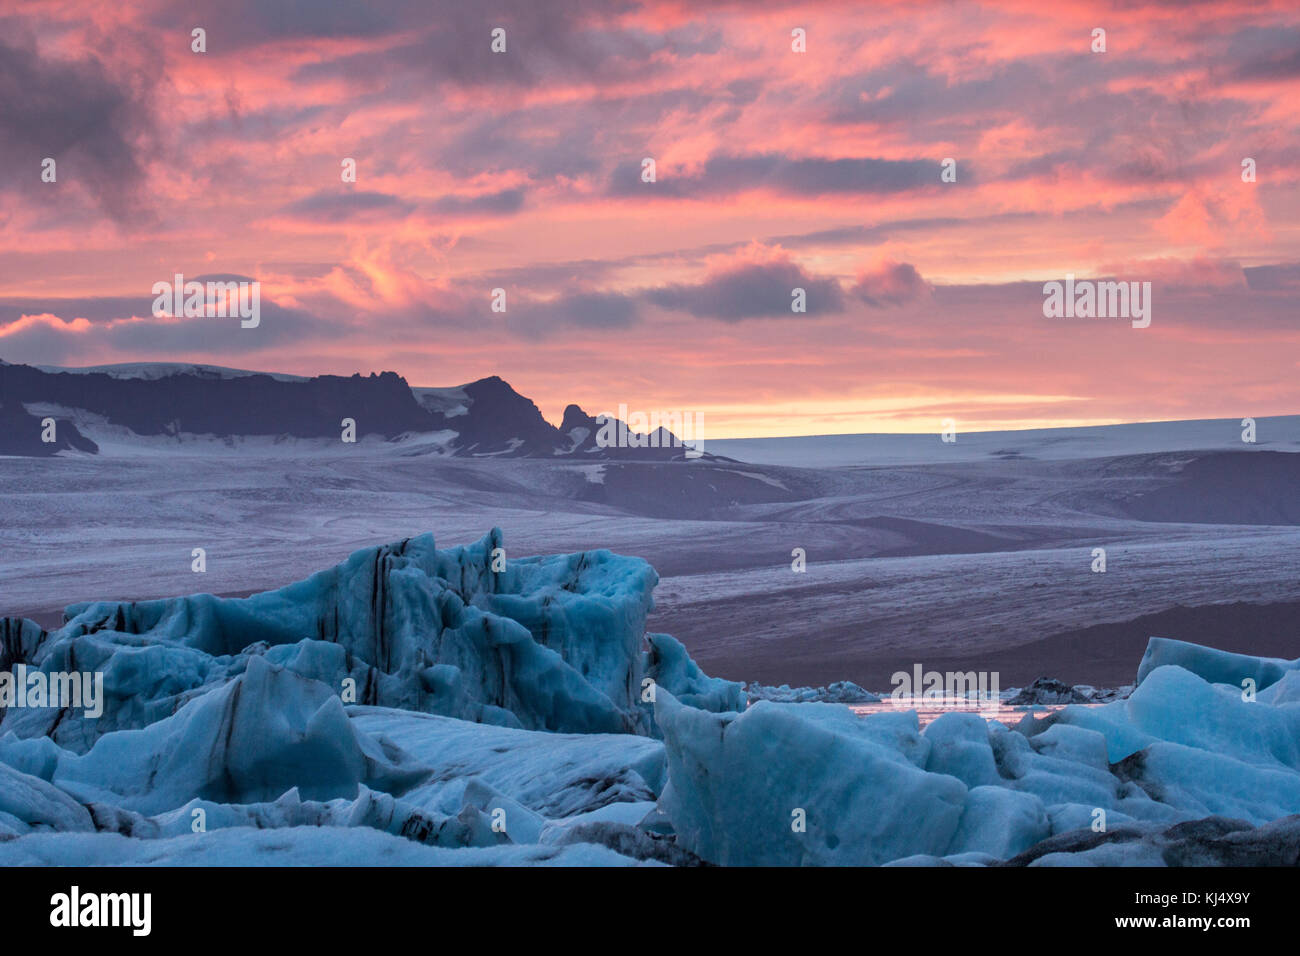 Glacier lagoon on the south east coast of Iceland Stock Photo